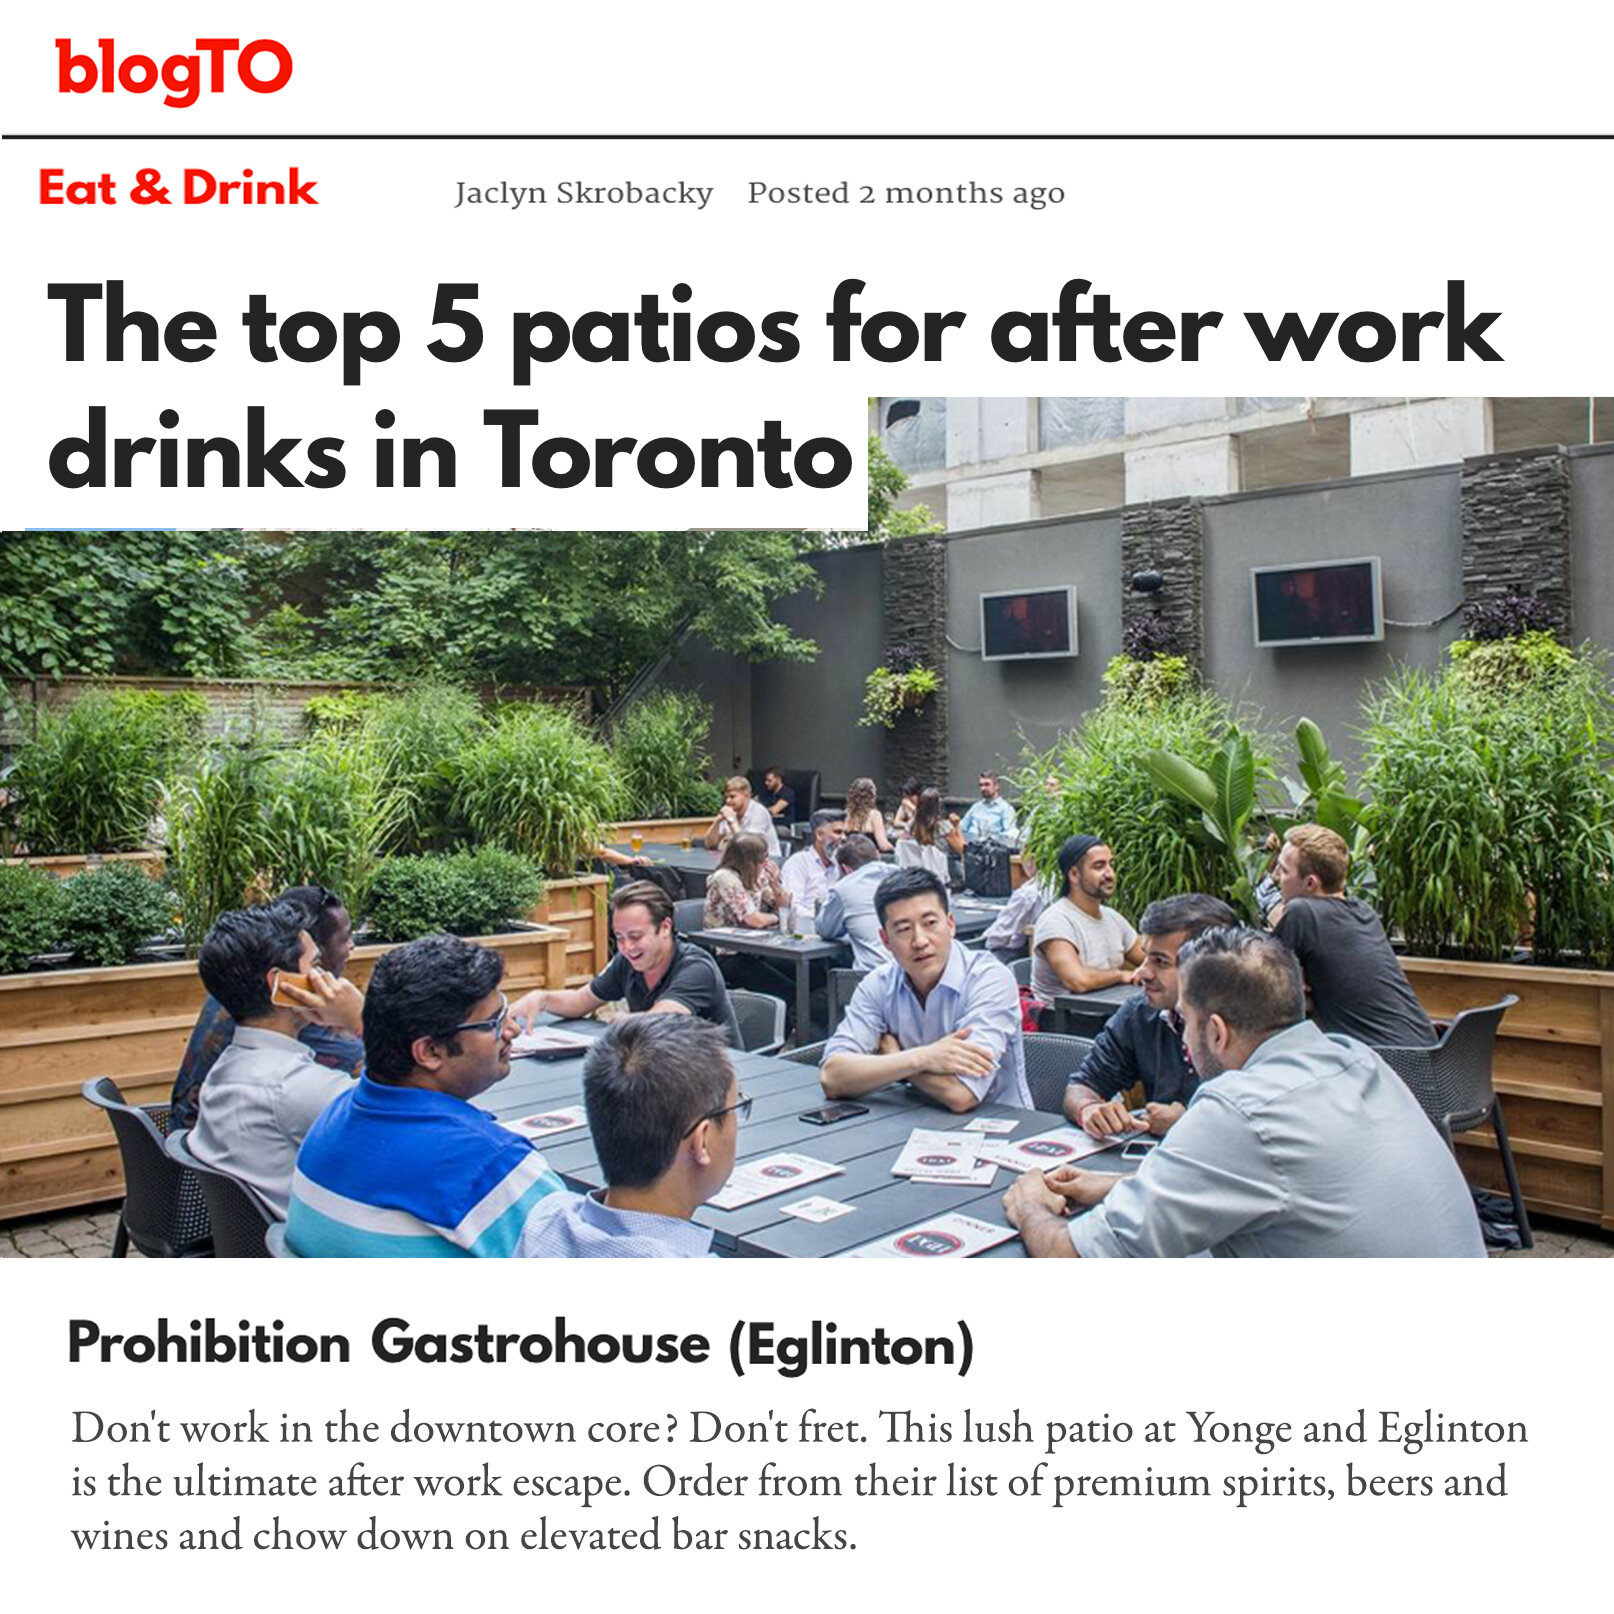 Prohibition Gastrohouse (Eglinton) Don't work in the downtown core? Don't fret. This lush patio at Yonge and Eglinton is the ultimate after work escape. Order from their list of premium spirits, beers and wines and chow down on elevated bar snacks.